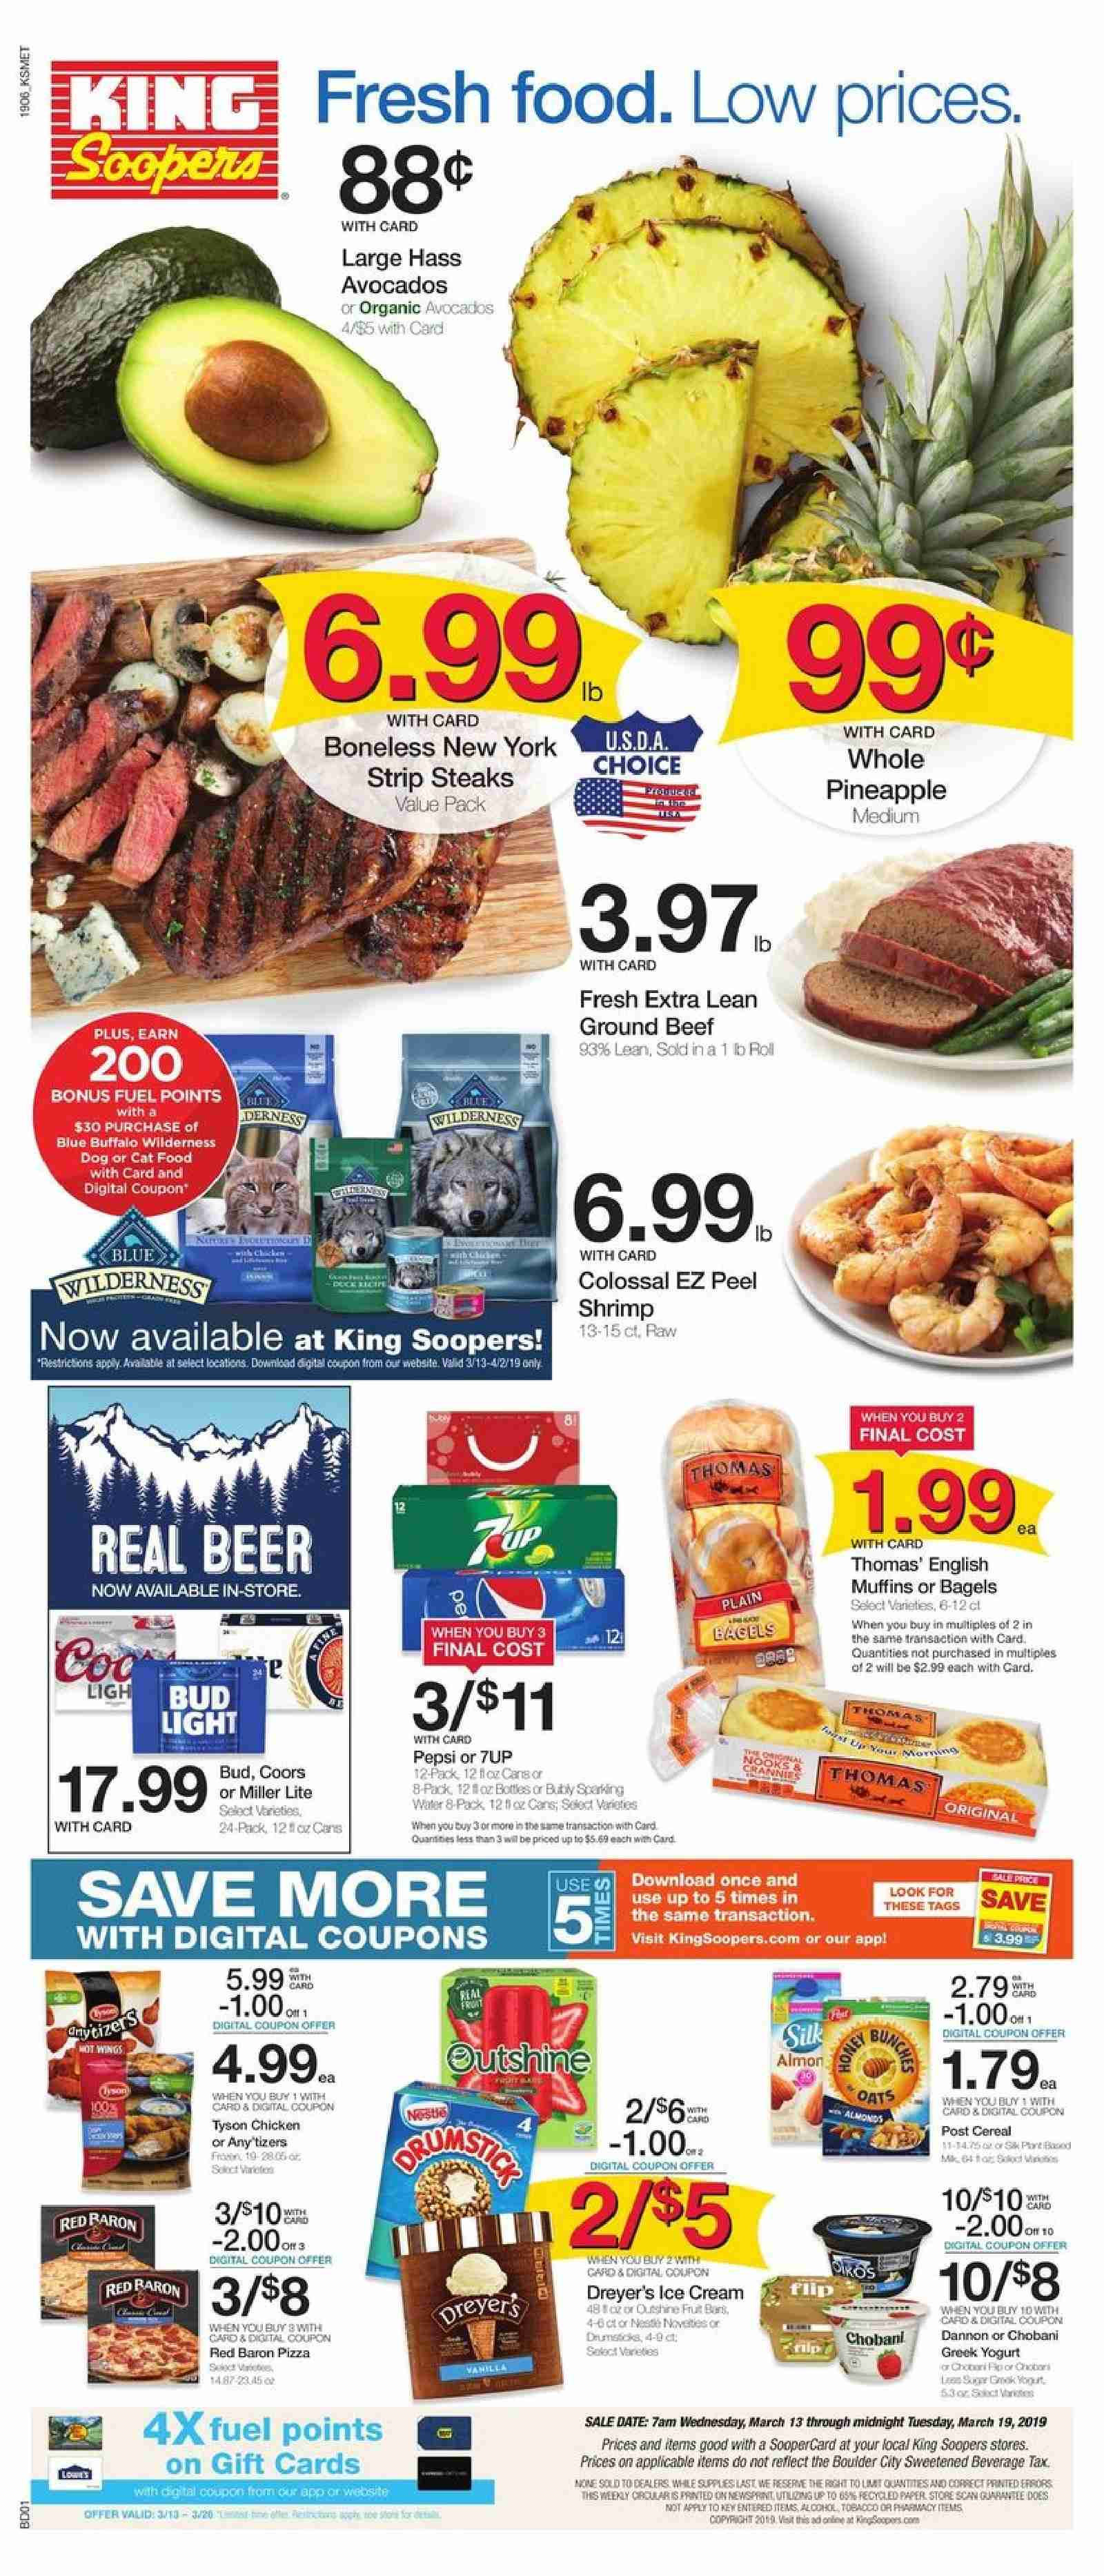 King Soopers Flyer  - 03.13.2019 - 03.19.2019. Page 1.